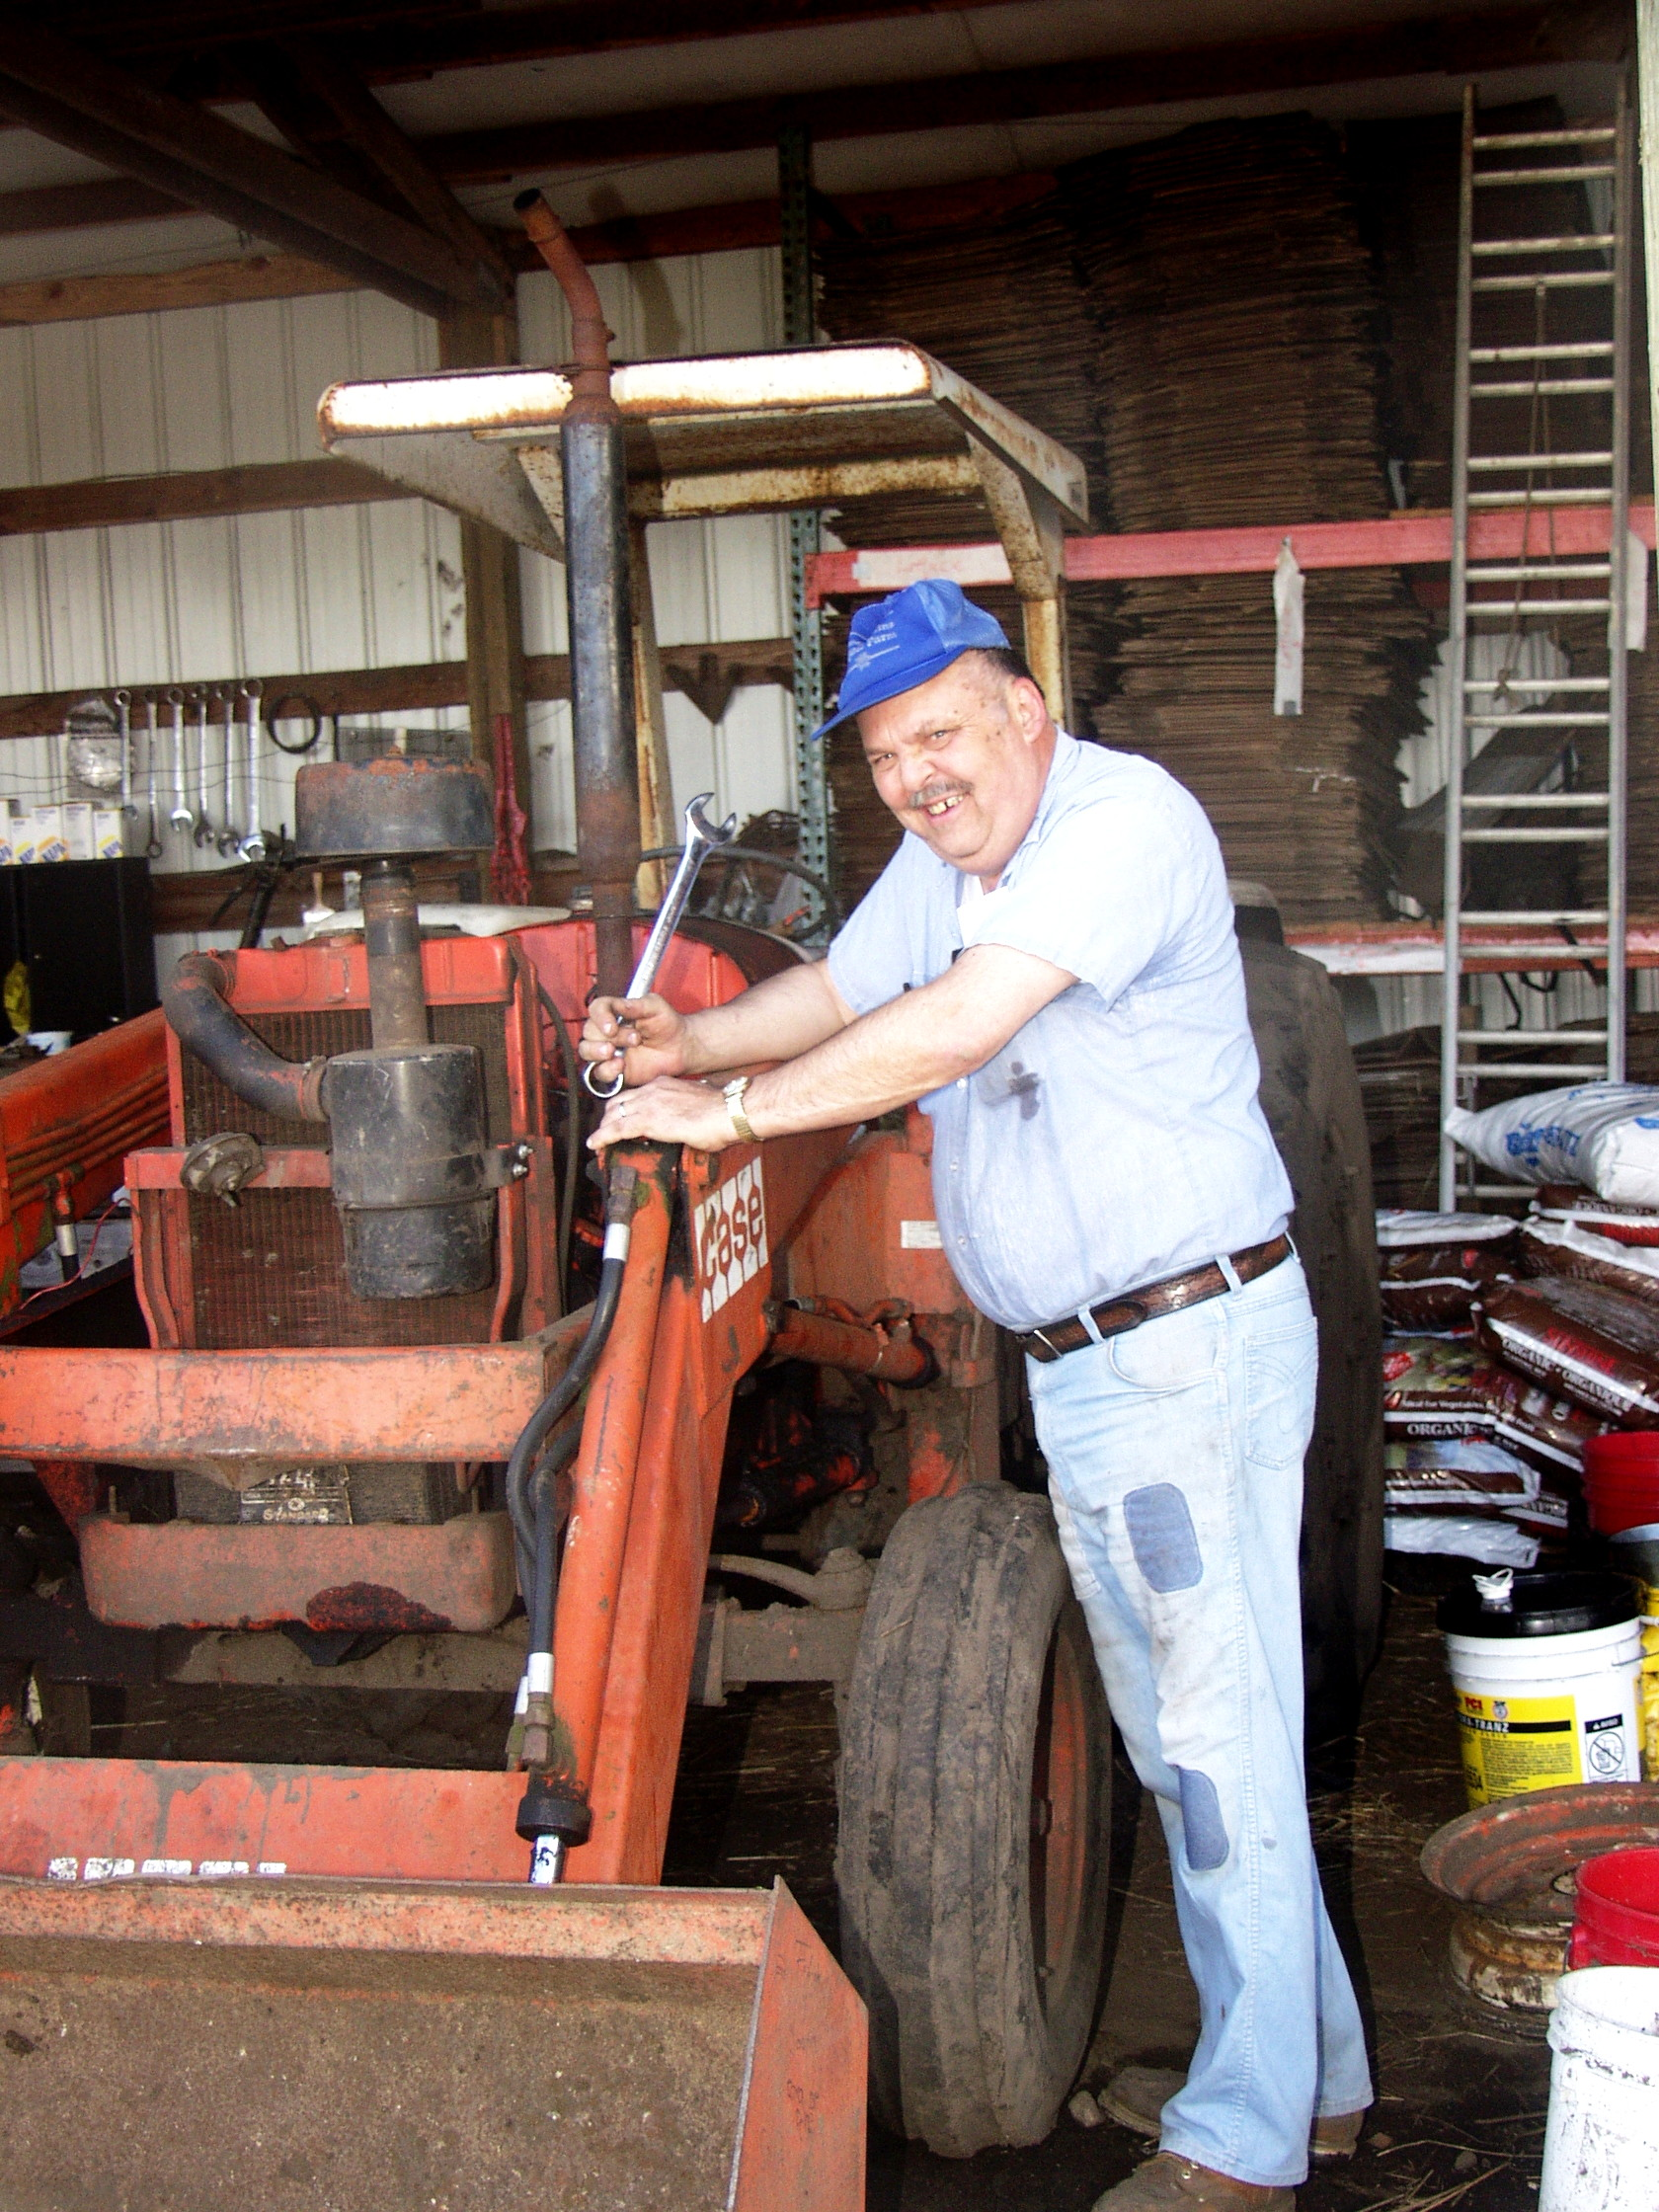 Bob Meyer of Stoney Plains Organic Farm working on his tractor. Photo courtesy Stoney Plains Organic Farm.